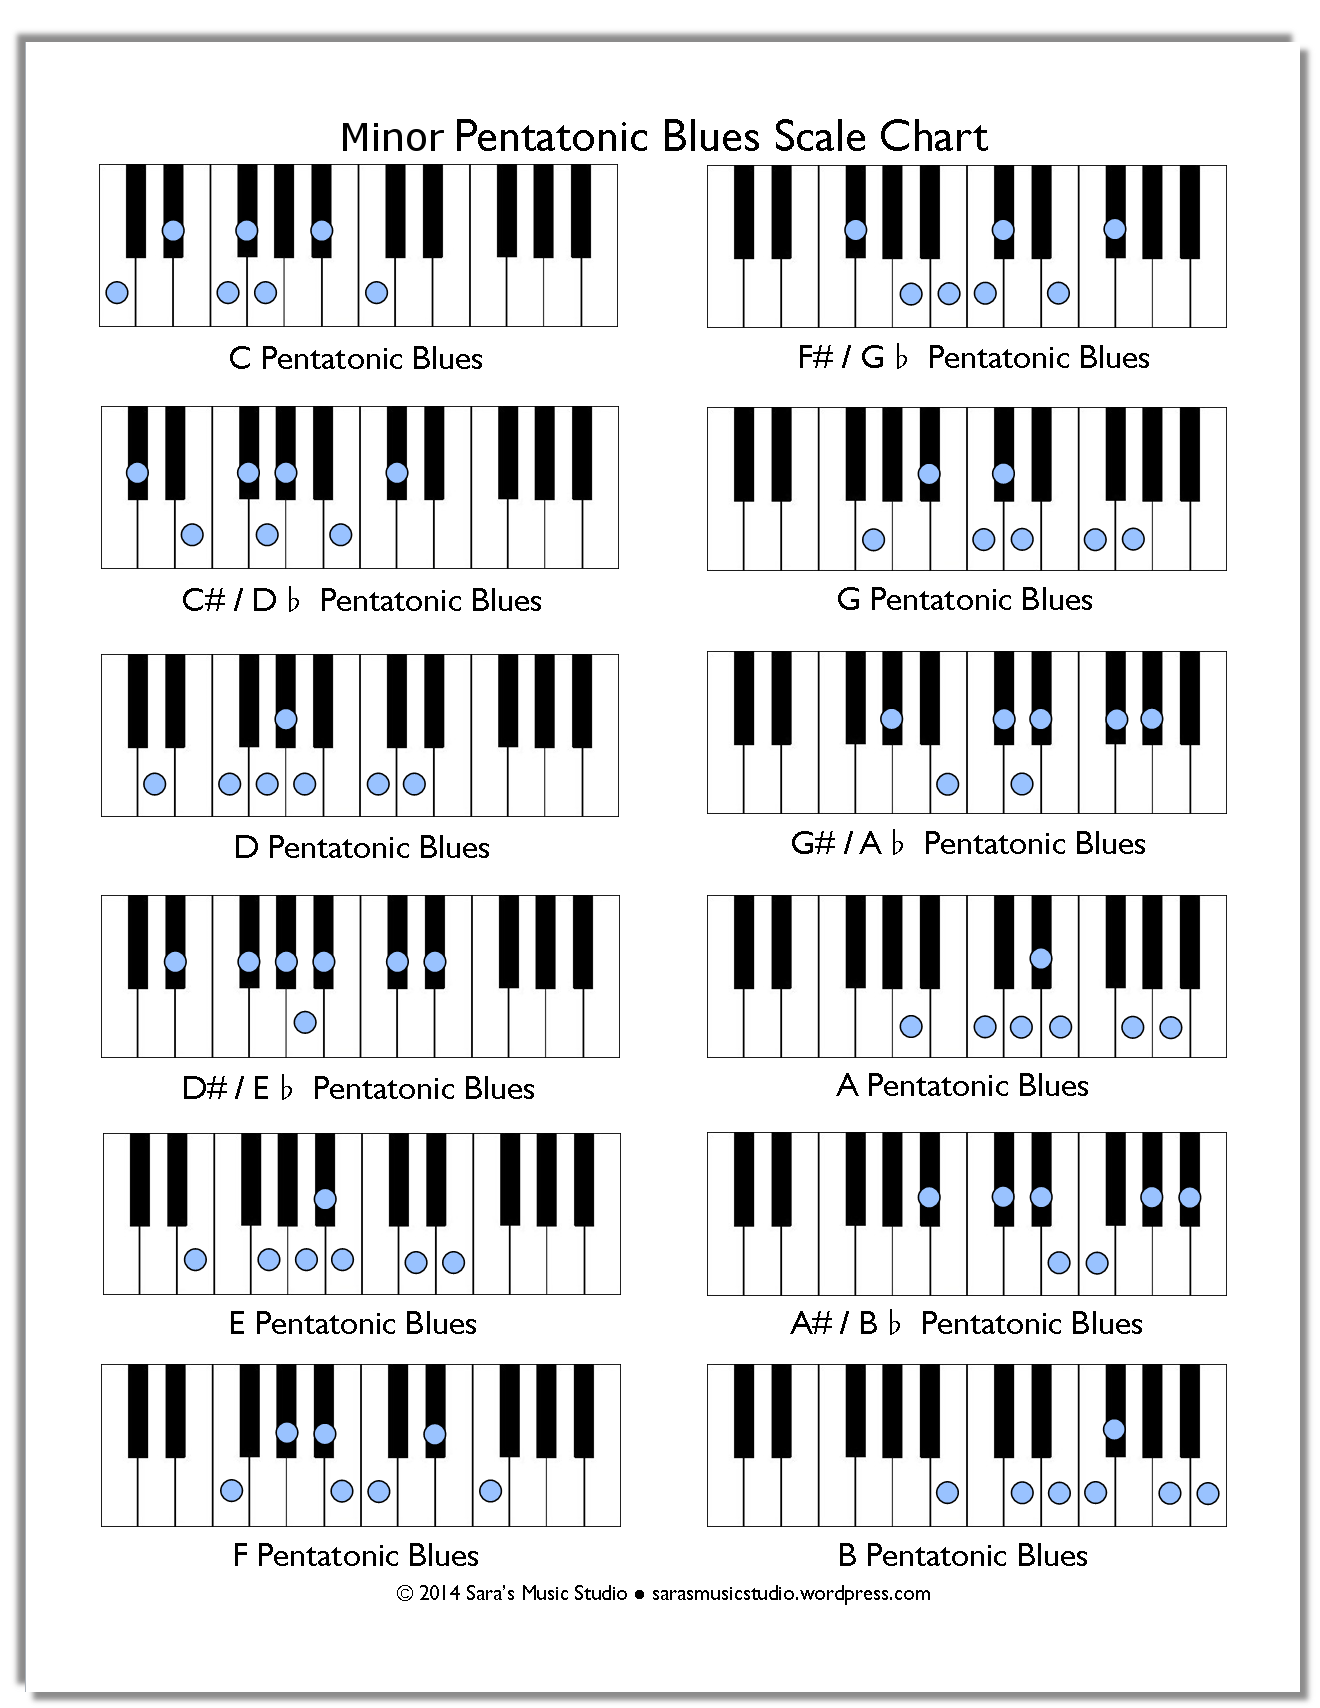 Pentatonic scales chart also free minor blues scale piano lessons and rh pinterest